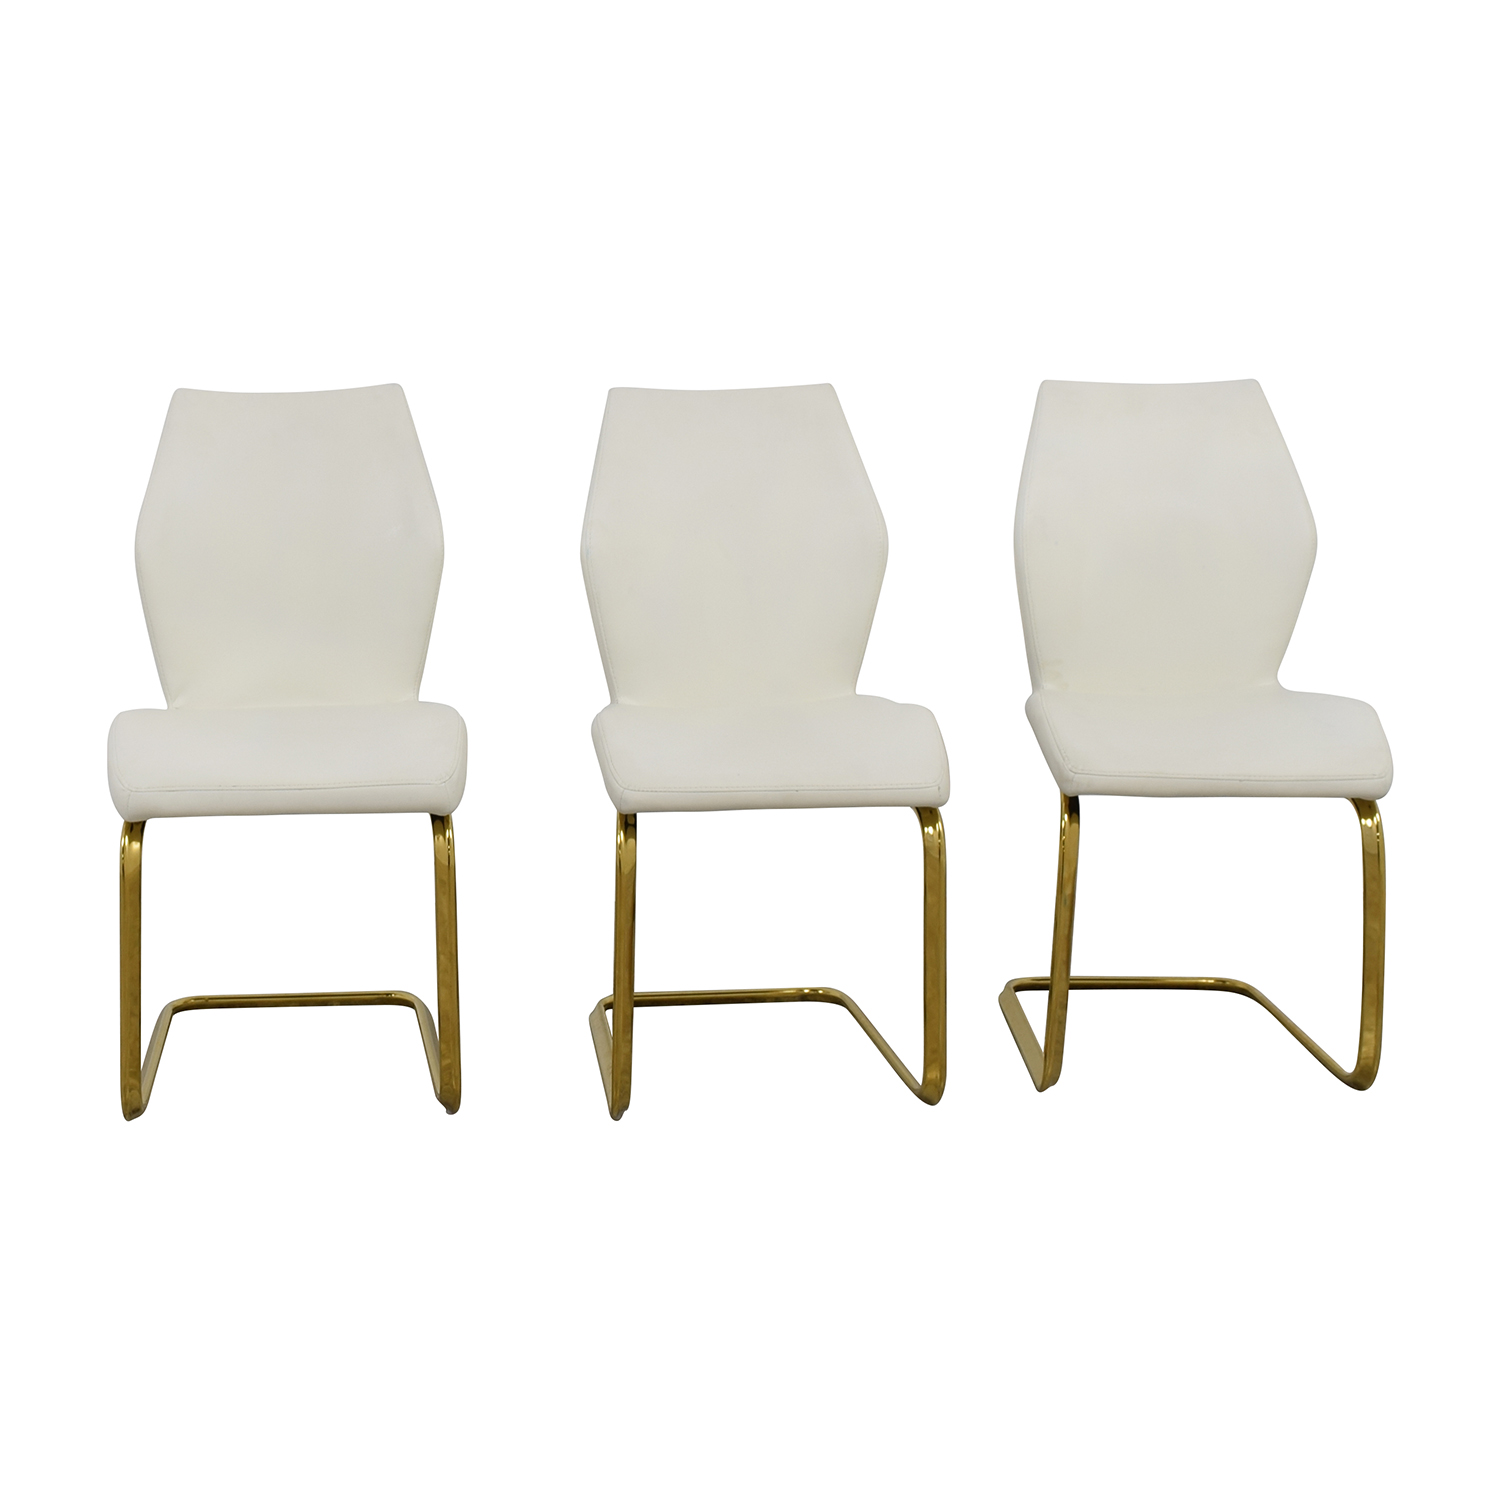 white leather chairs dining office chair repair parts used for sale